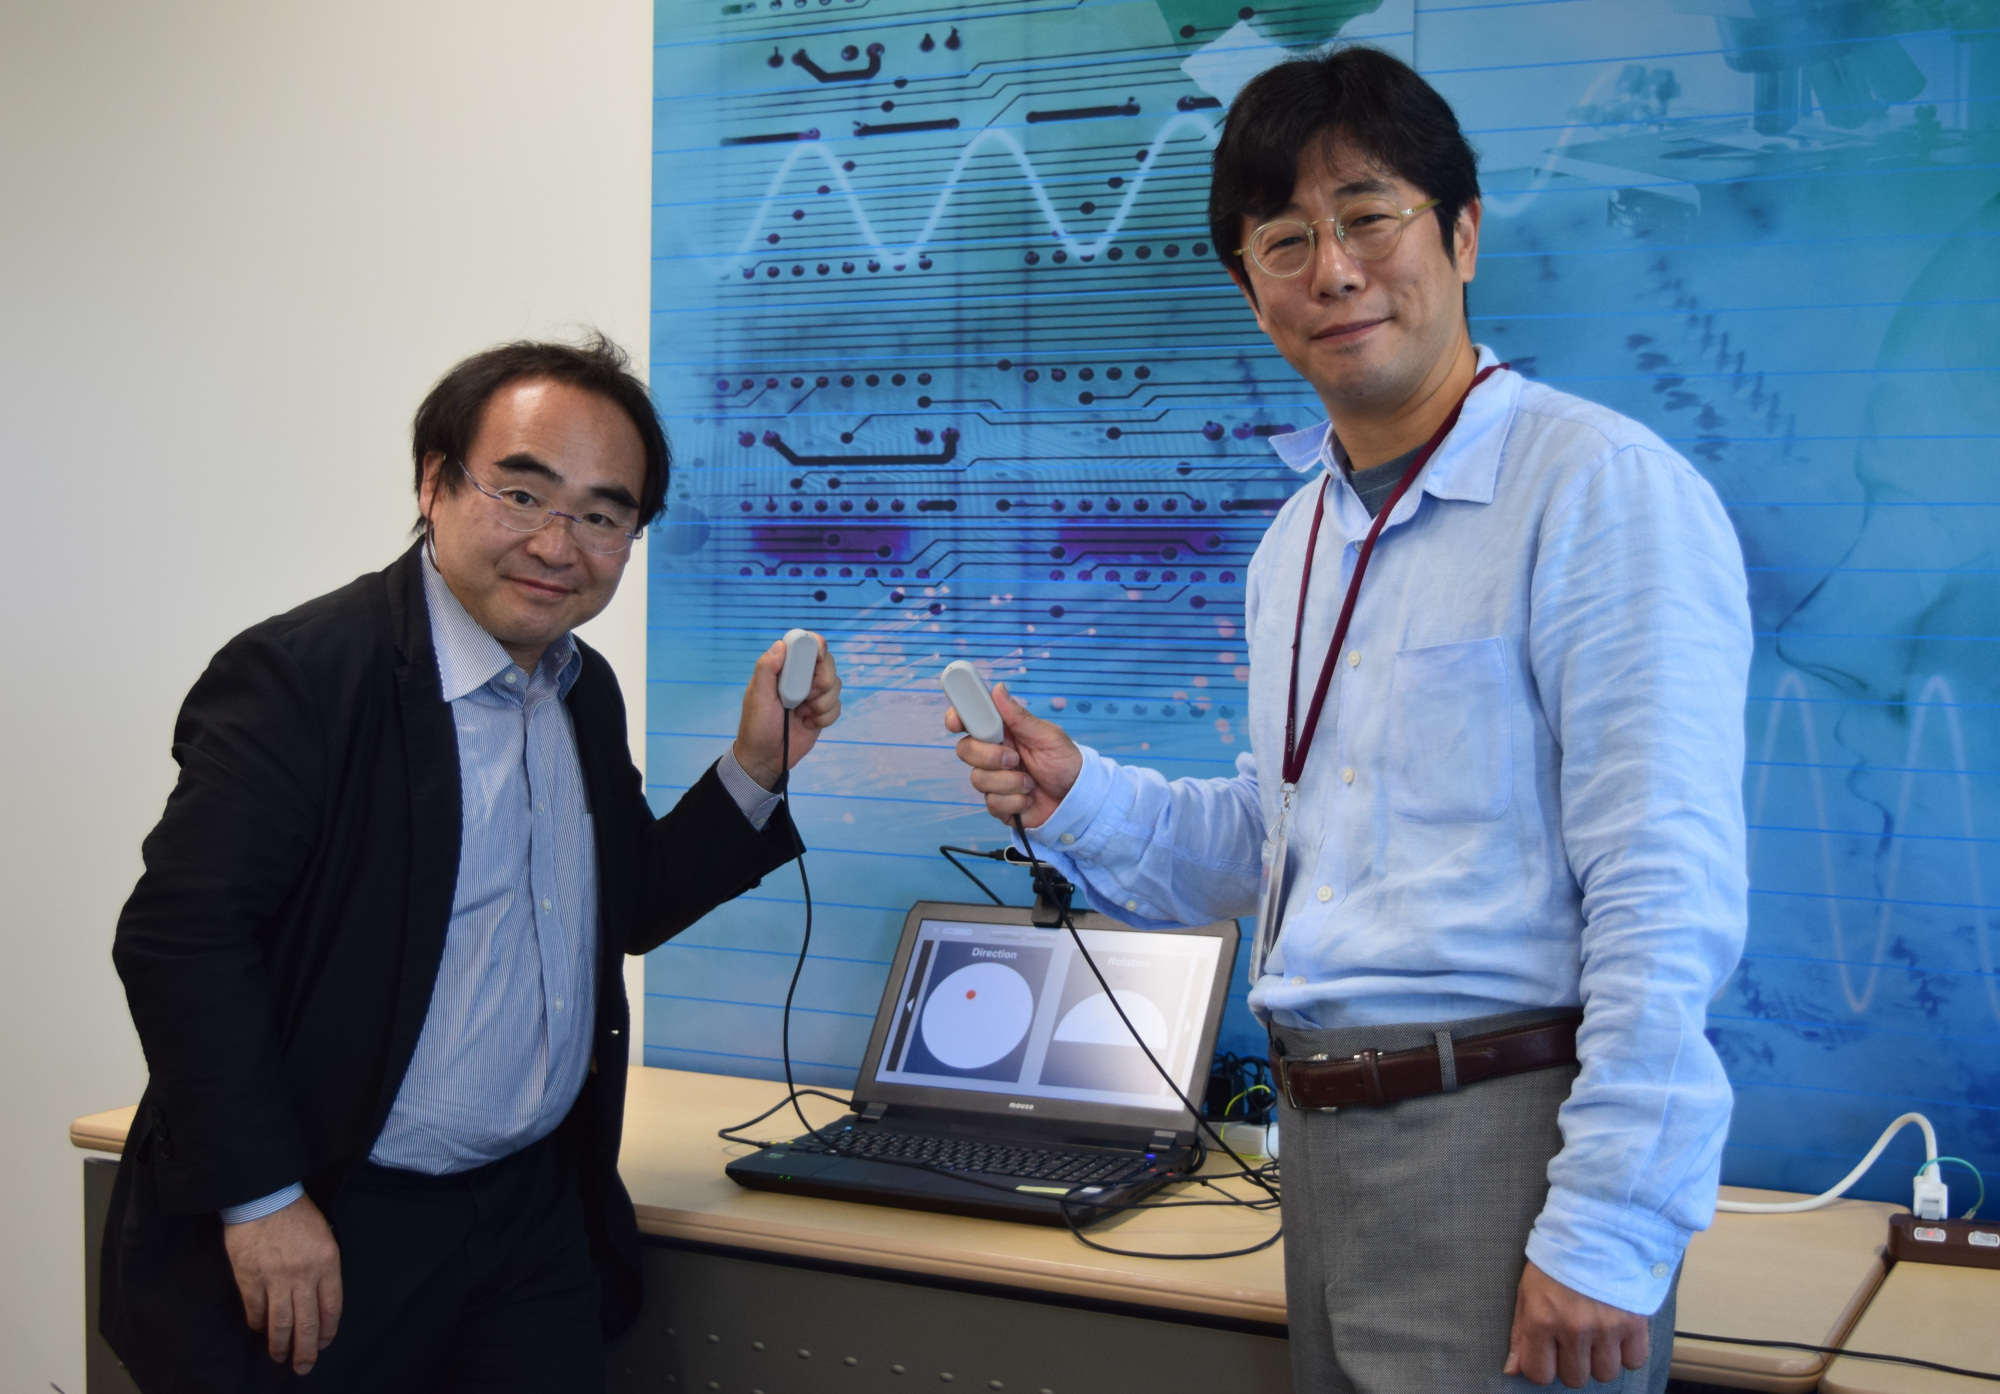 Miraisens Inc. CEO Natsuo Koda (right) and founder and Chief Technology Officer Norio Nakamura hold a palm-sized device equipped with 3D Haptics, which can recreate a variety of touch sensations in a three-dimensional space. | MASUMI KOIZUMI